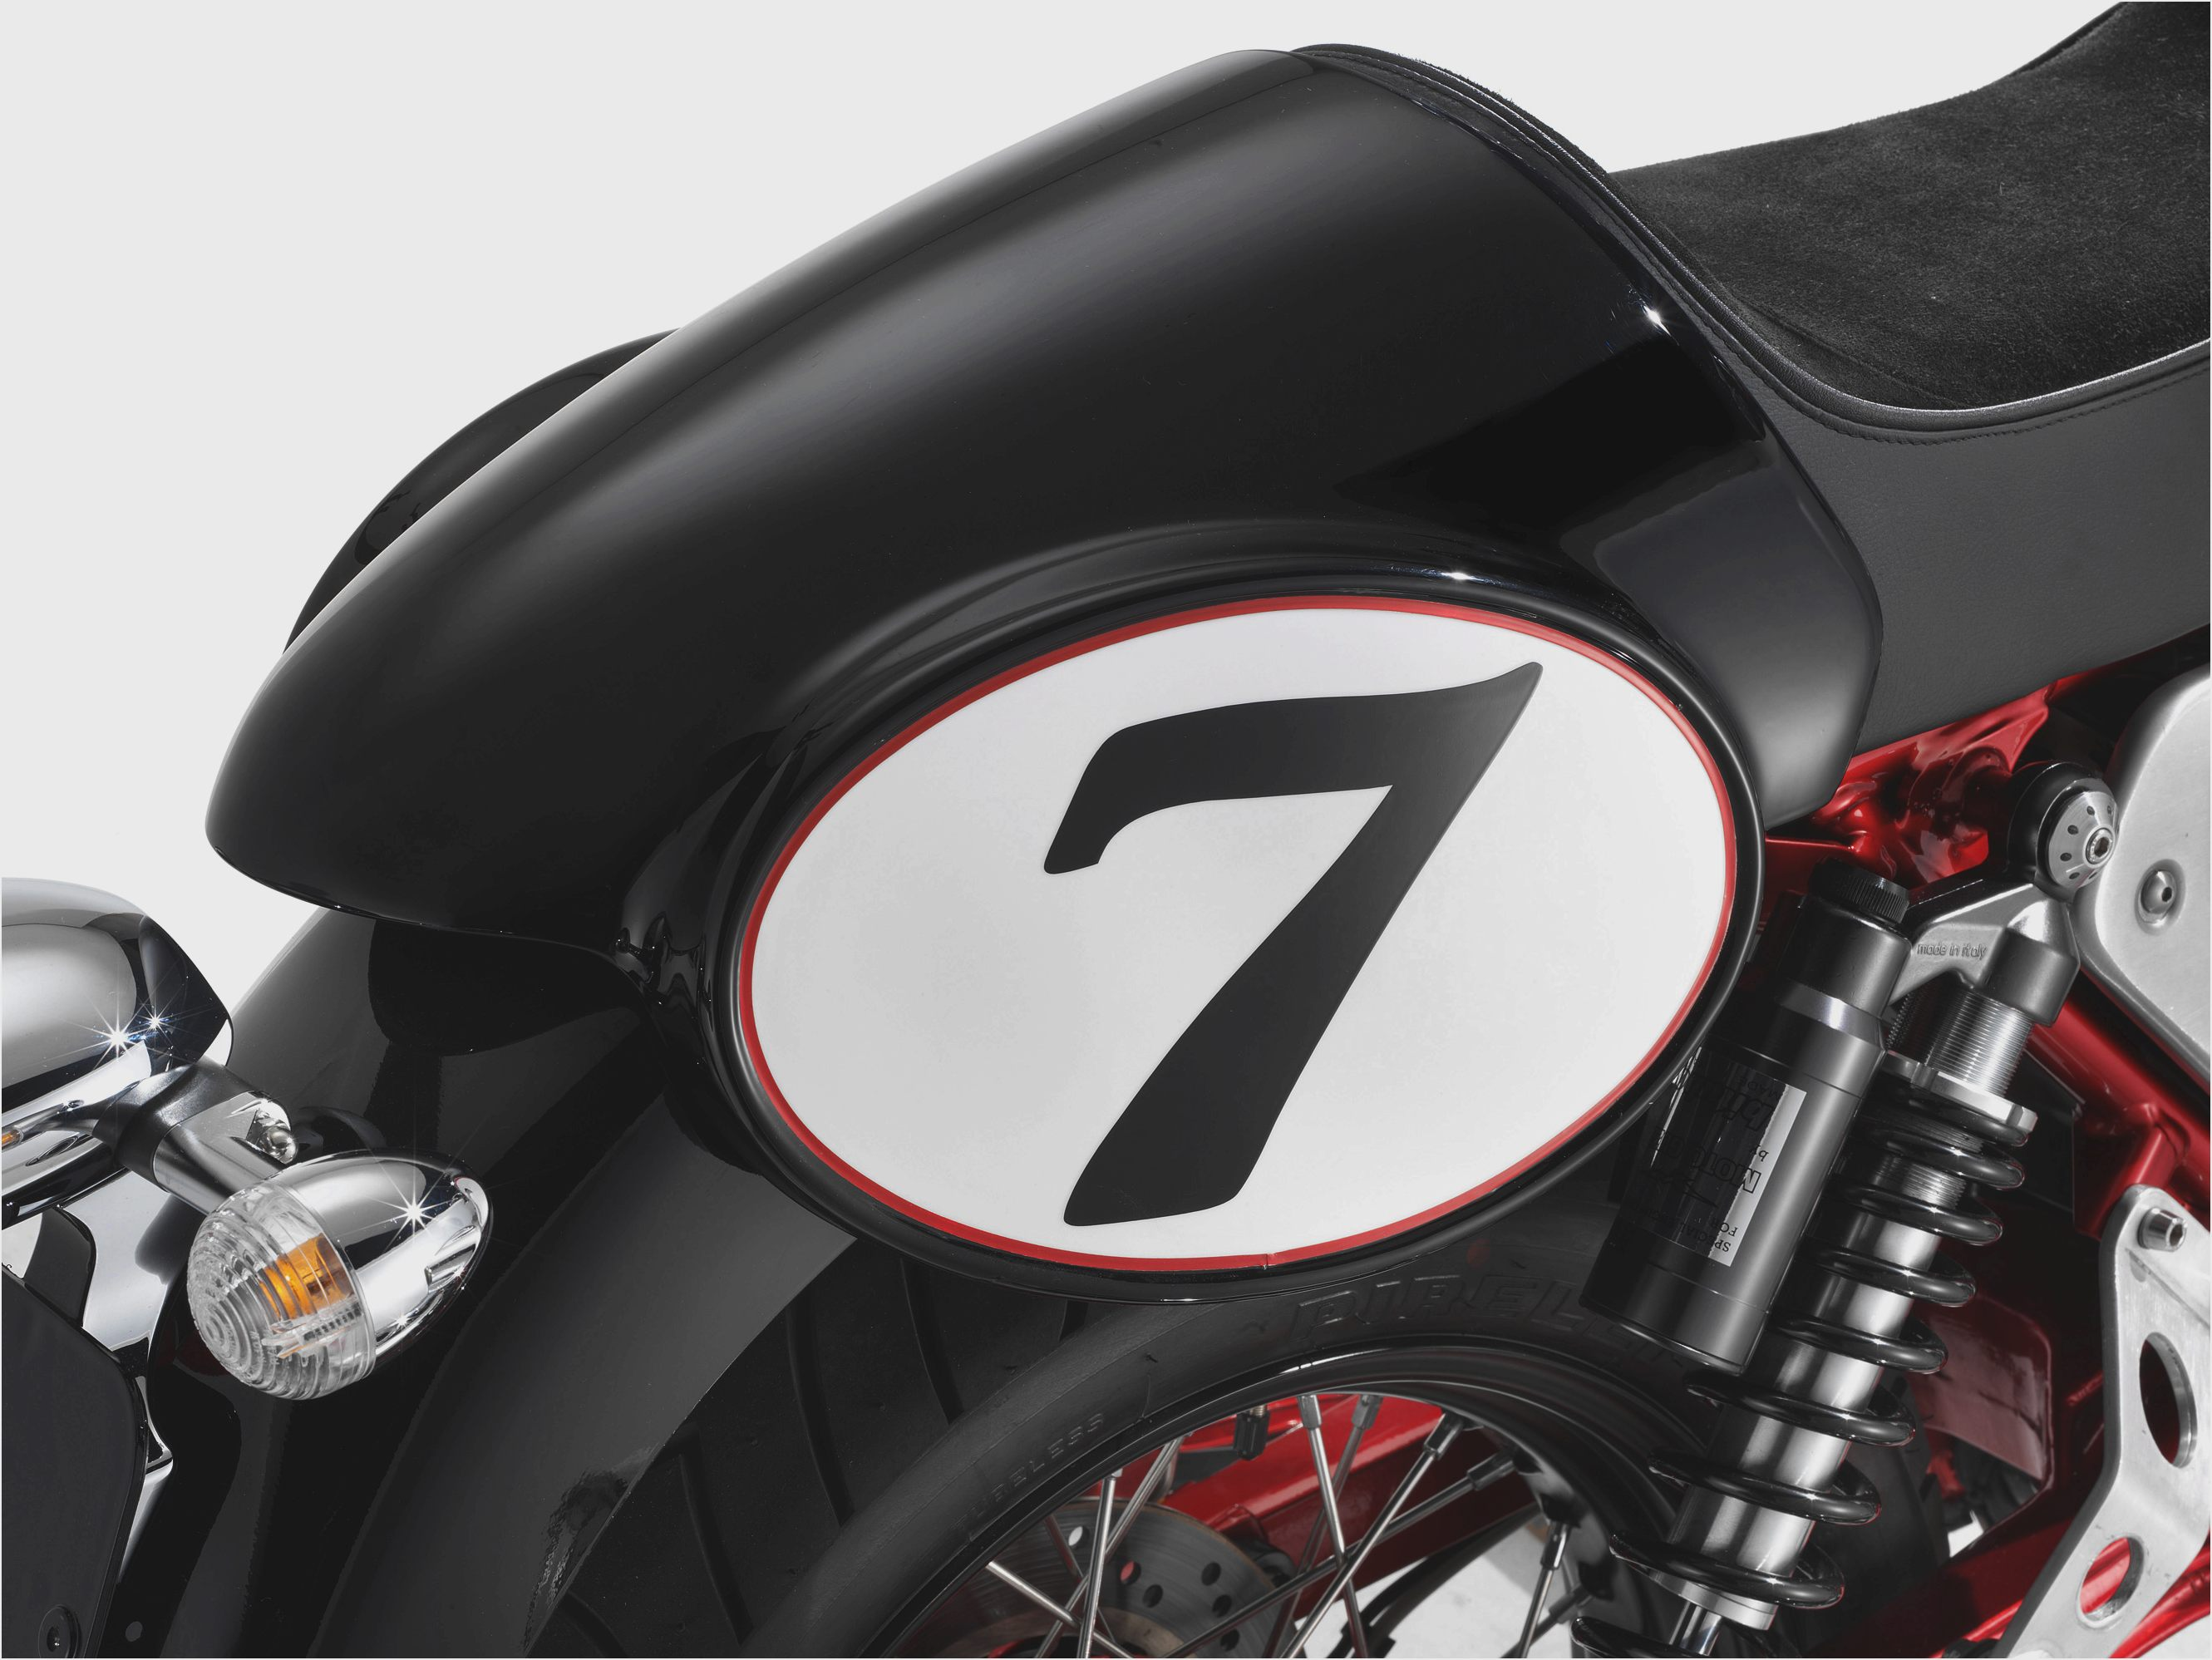 Moto Guzzi V7 Racer Limited Edition 2011 images #109583